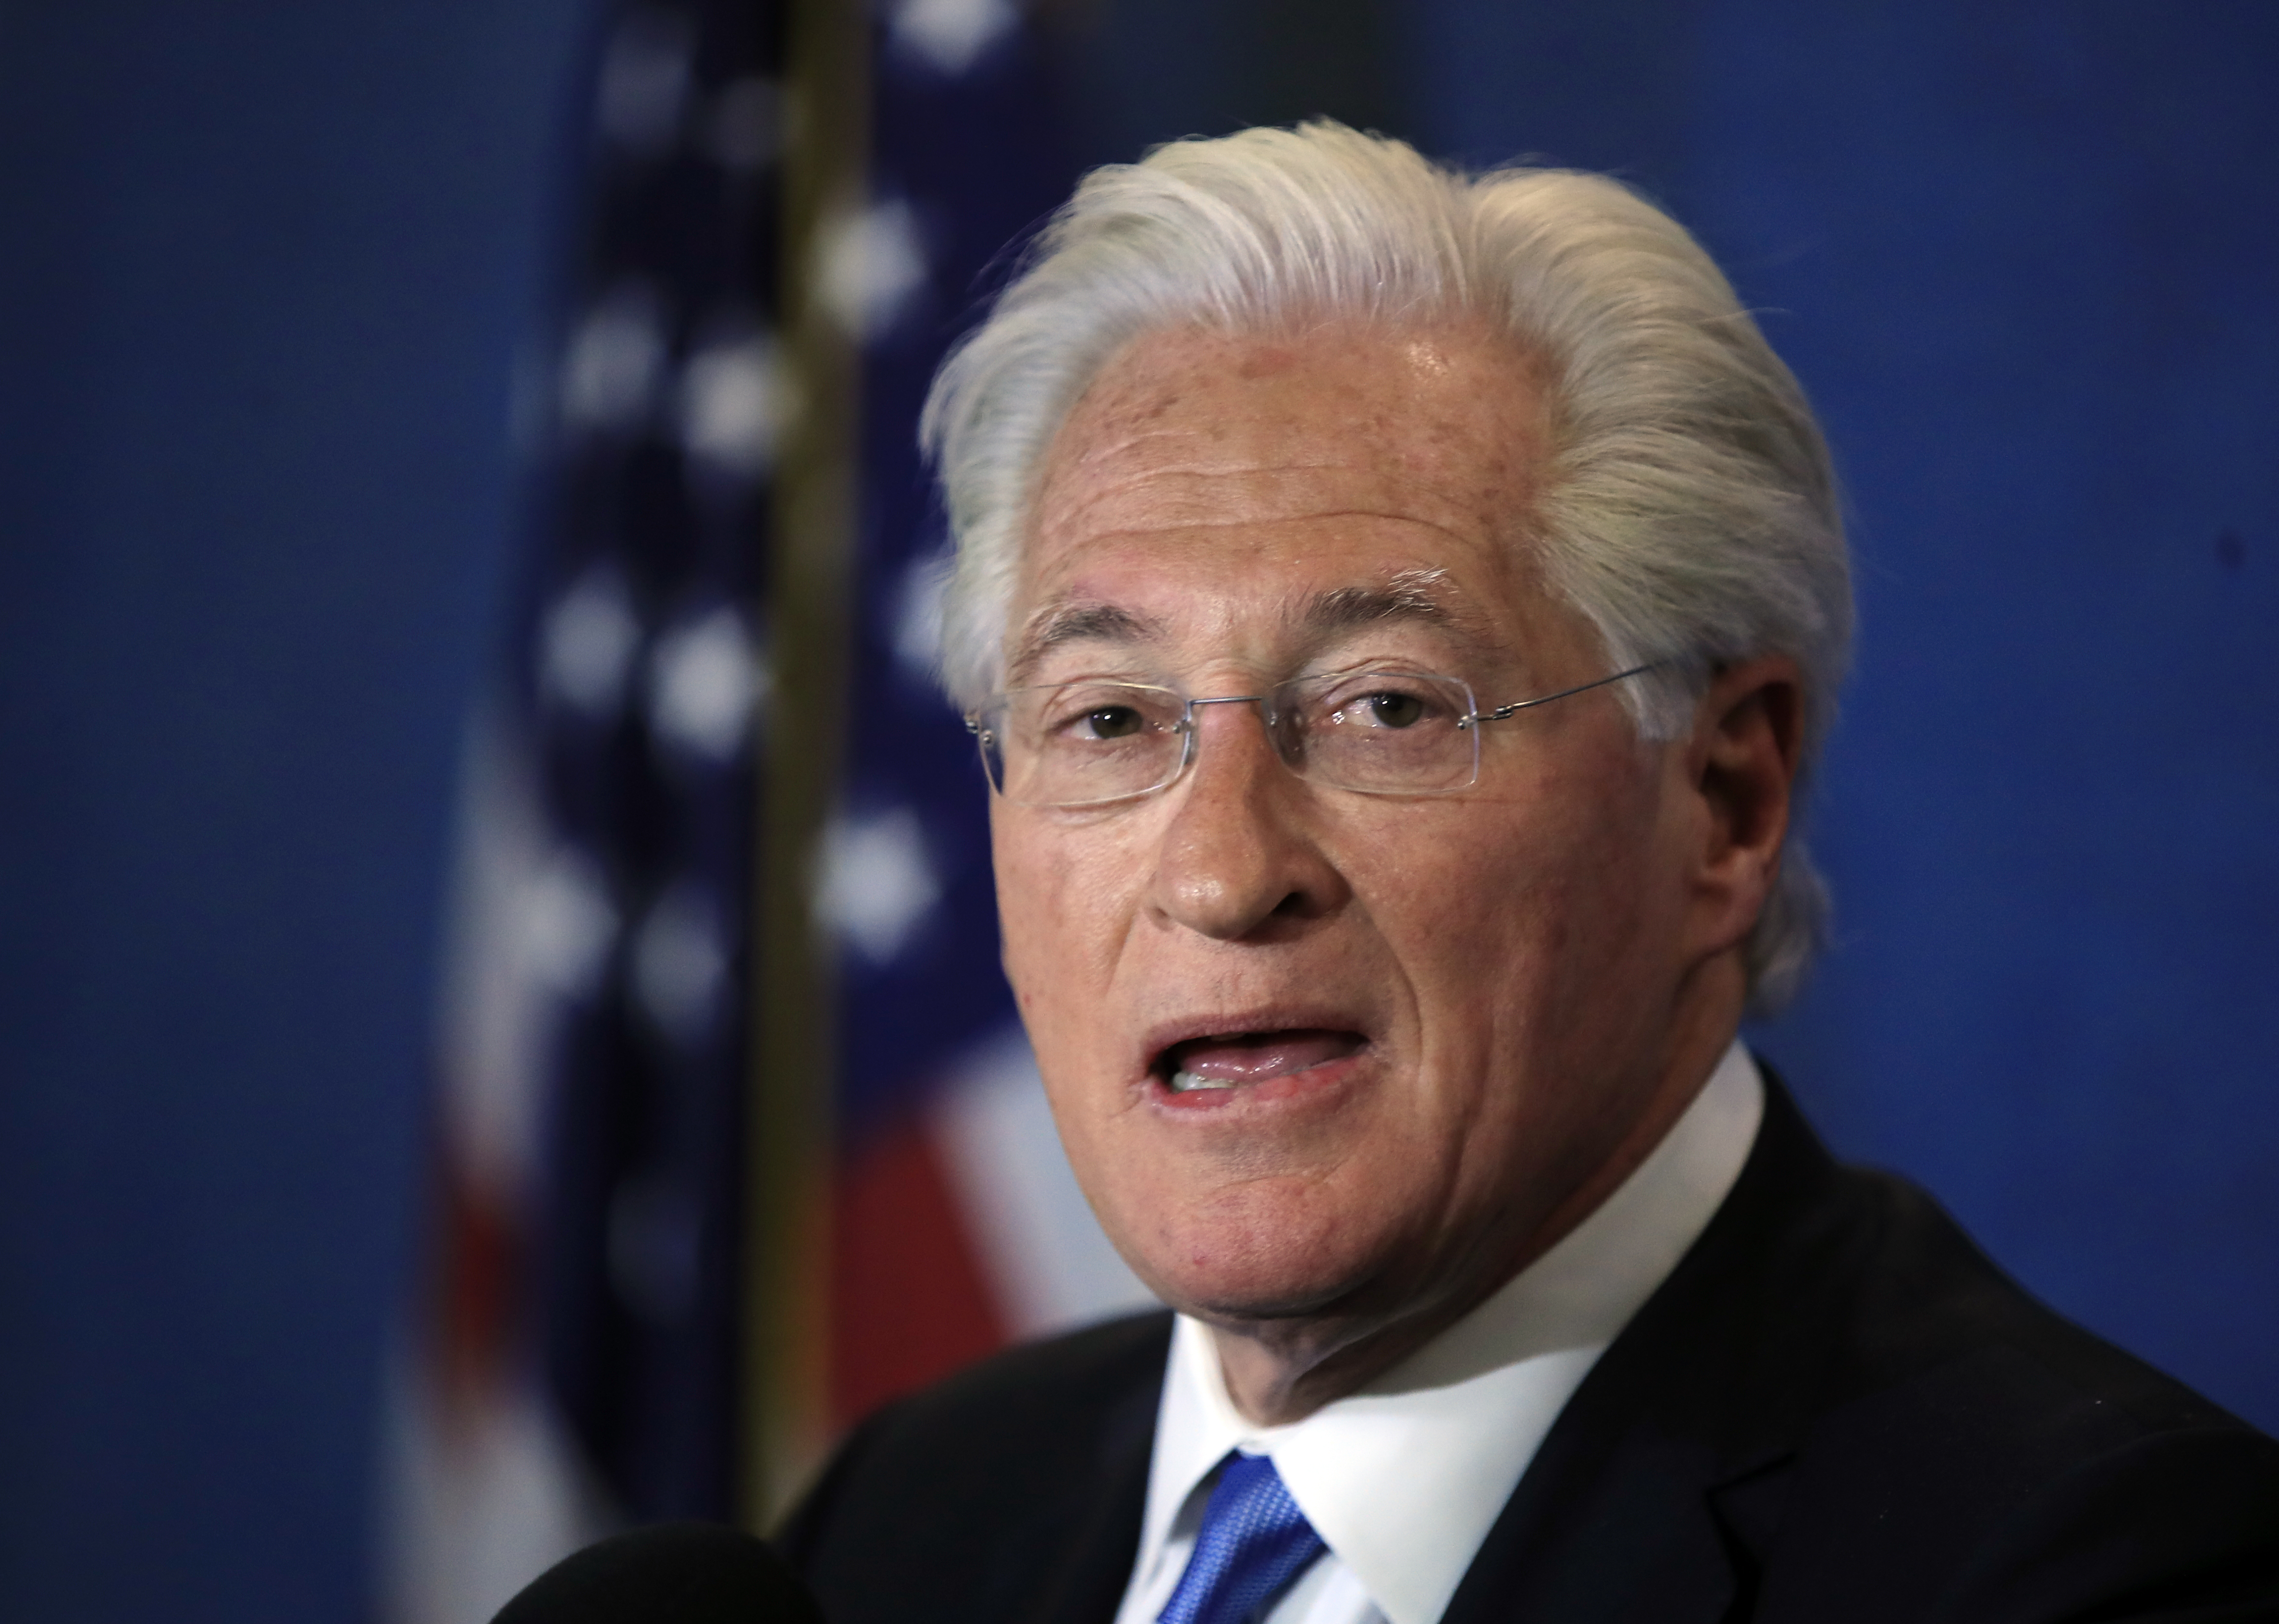 Marc Kasowitz personal attorney of President Donald Trump makes a statement at the National Press Club, following the congressional testimony of former FBI Director James Comey in Washington, June 8, 2017. (AP)